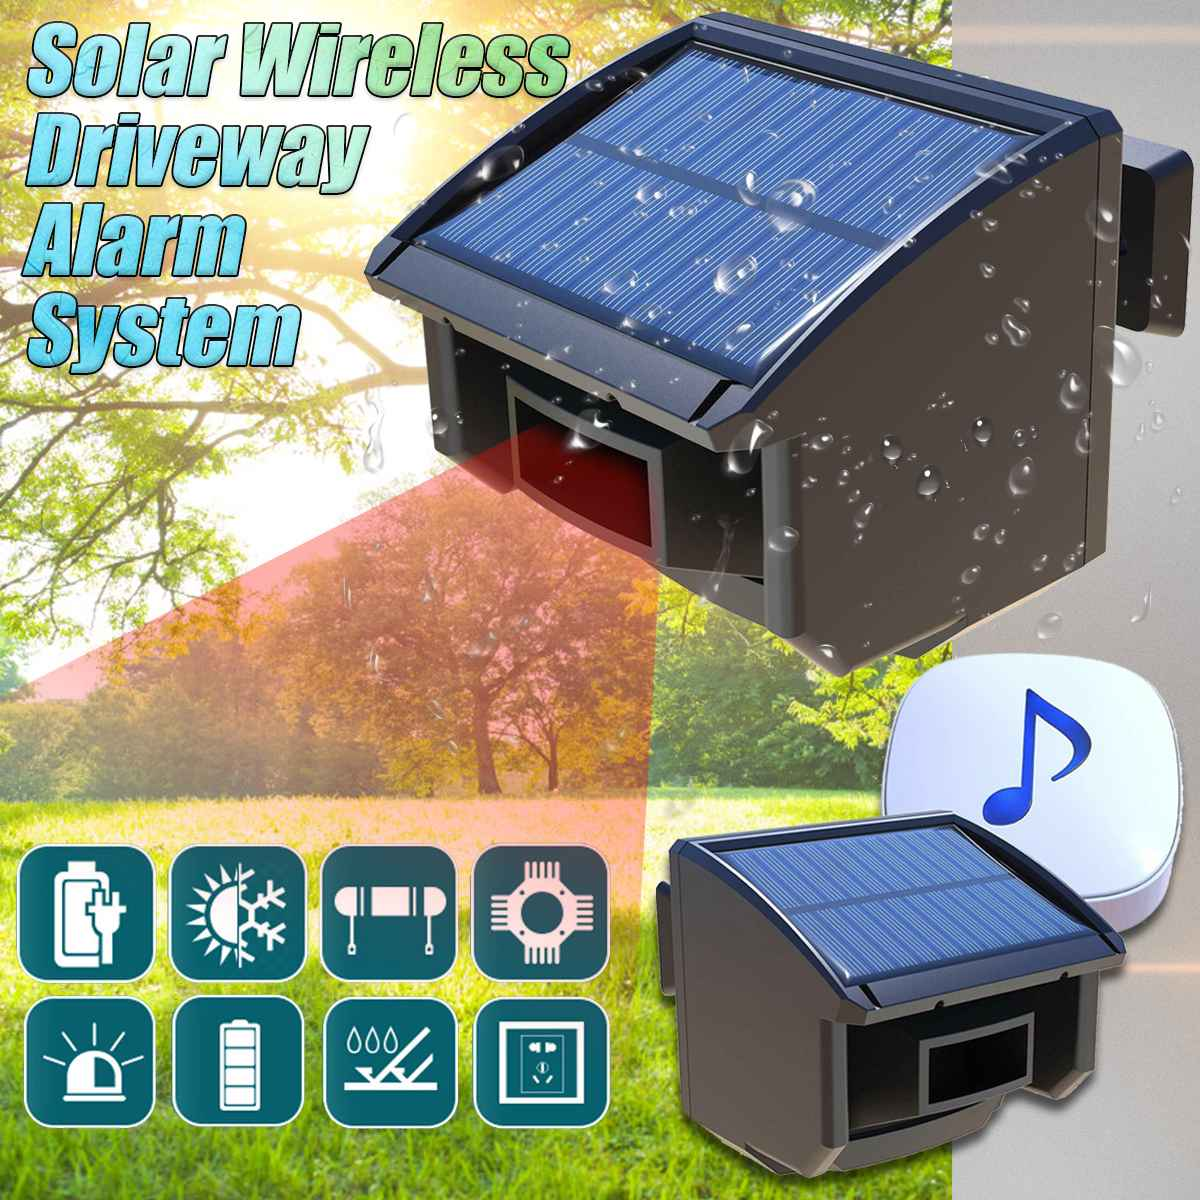 Solar Powered Wireless Motion Sensor Detector Solar Driveway Alarm System Waterproof Outdoor Motion Sensor Detector